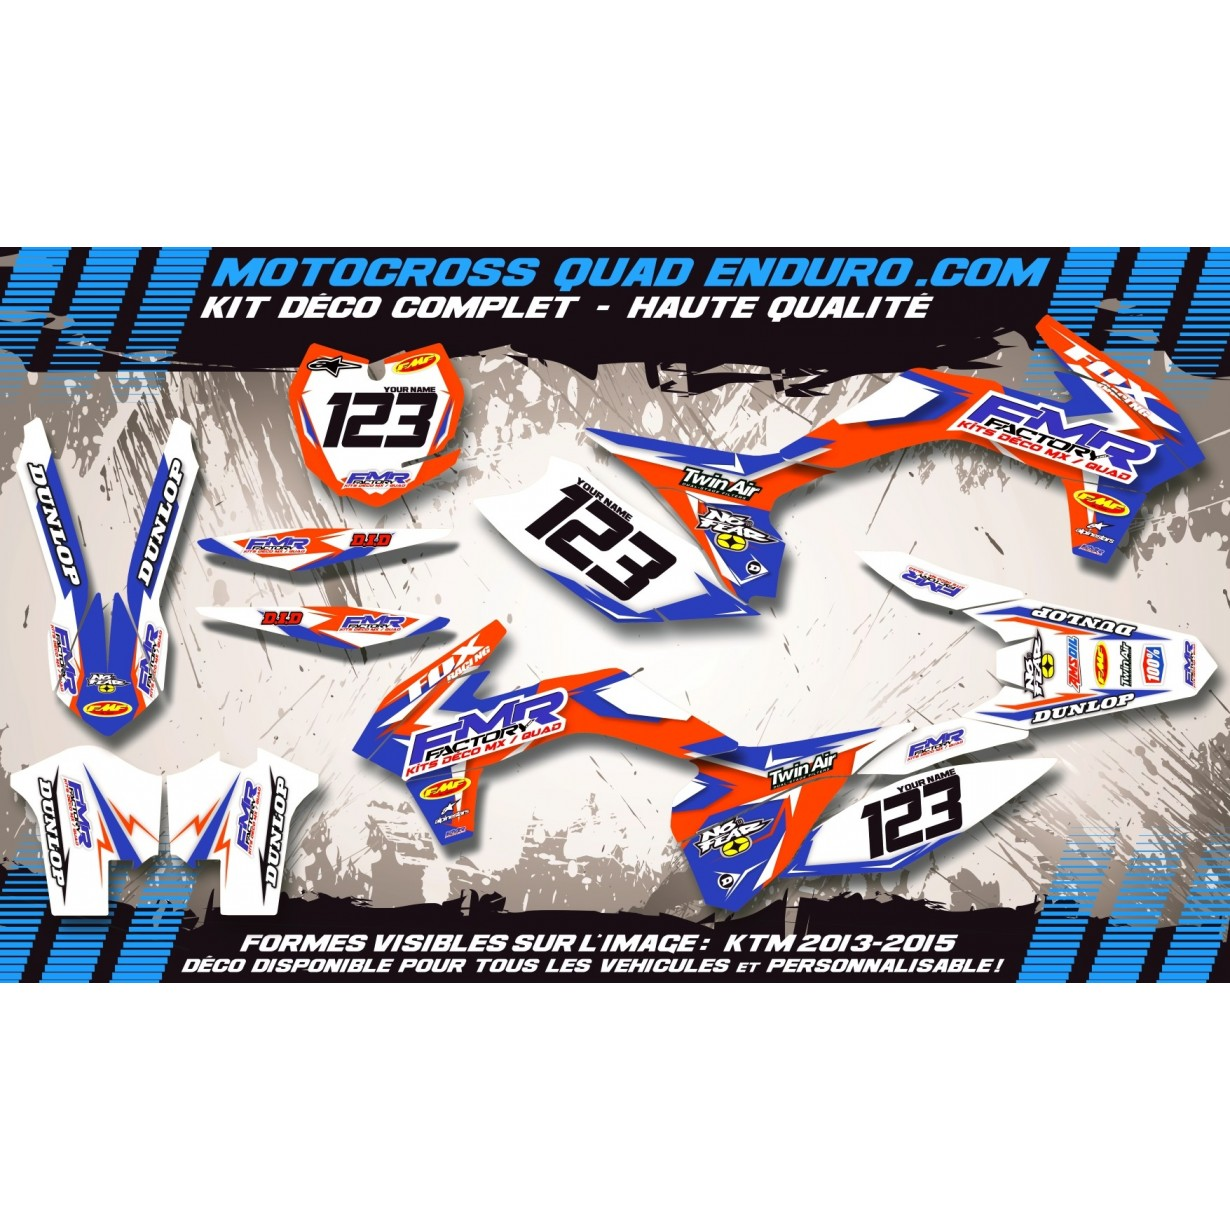 KIT DÉCO Perso Freeride Fmr Factory MA13C